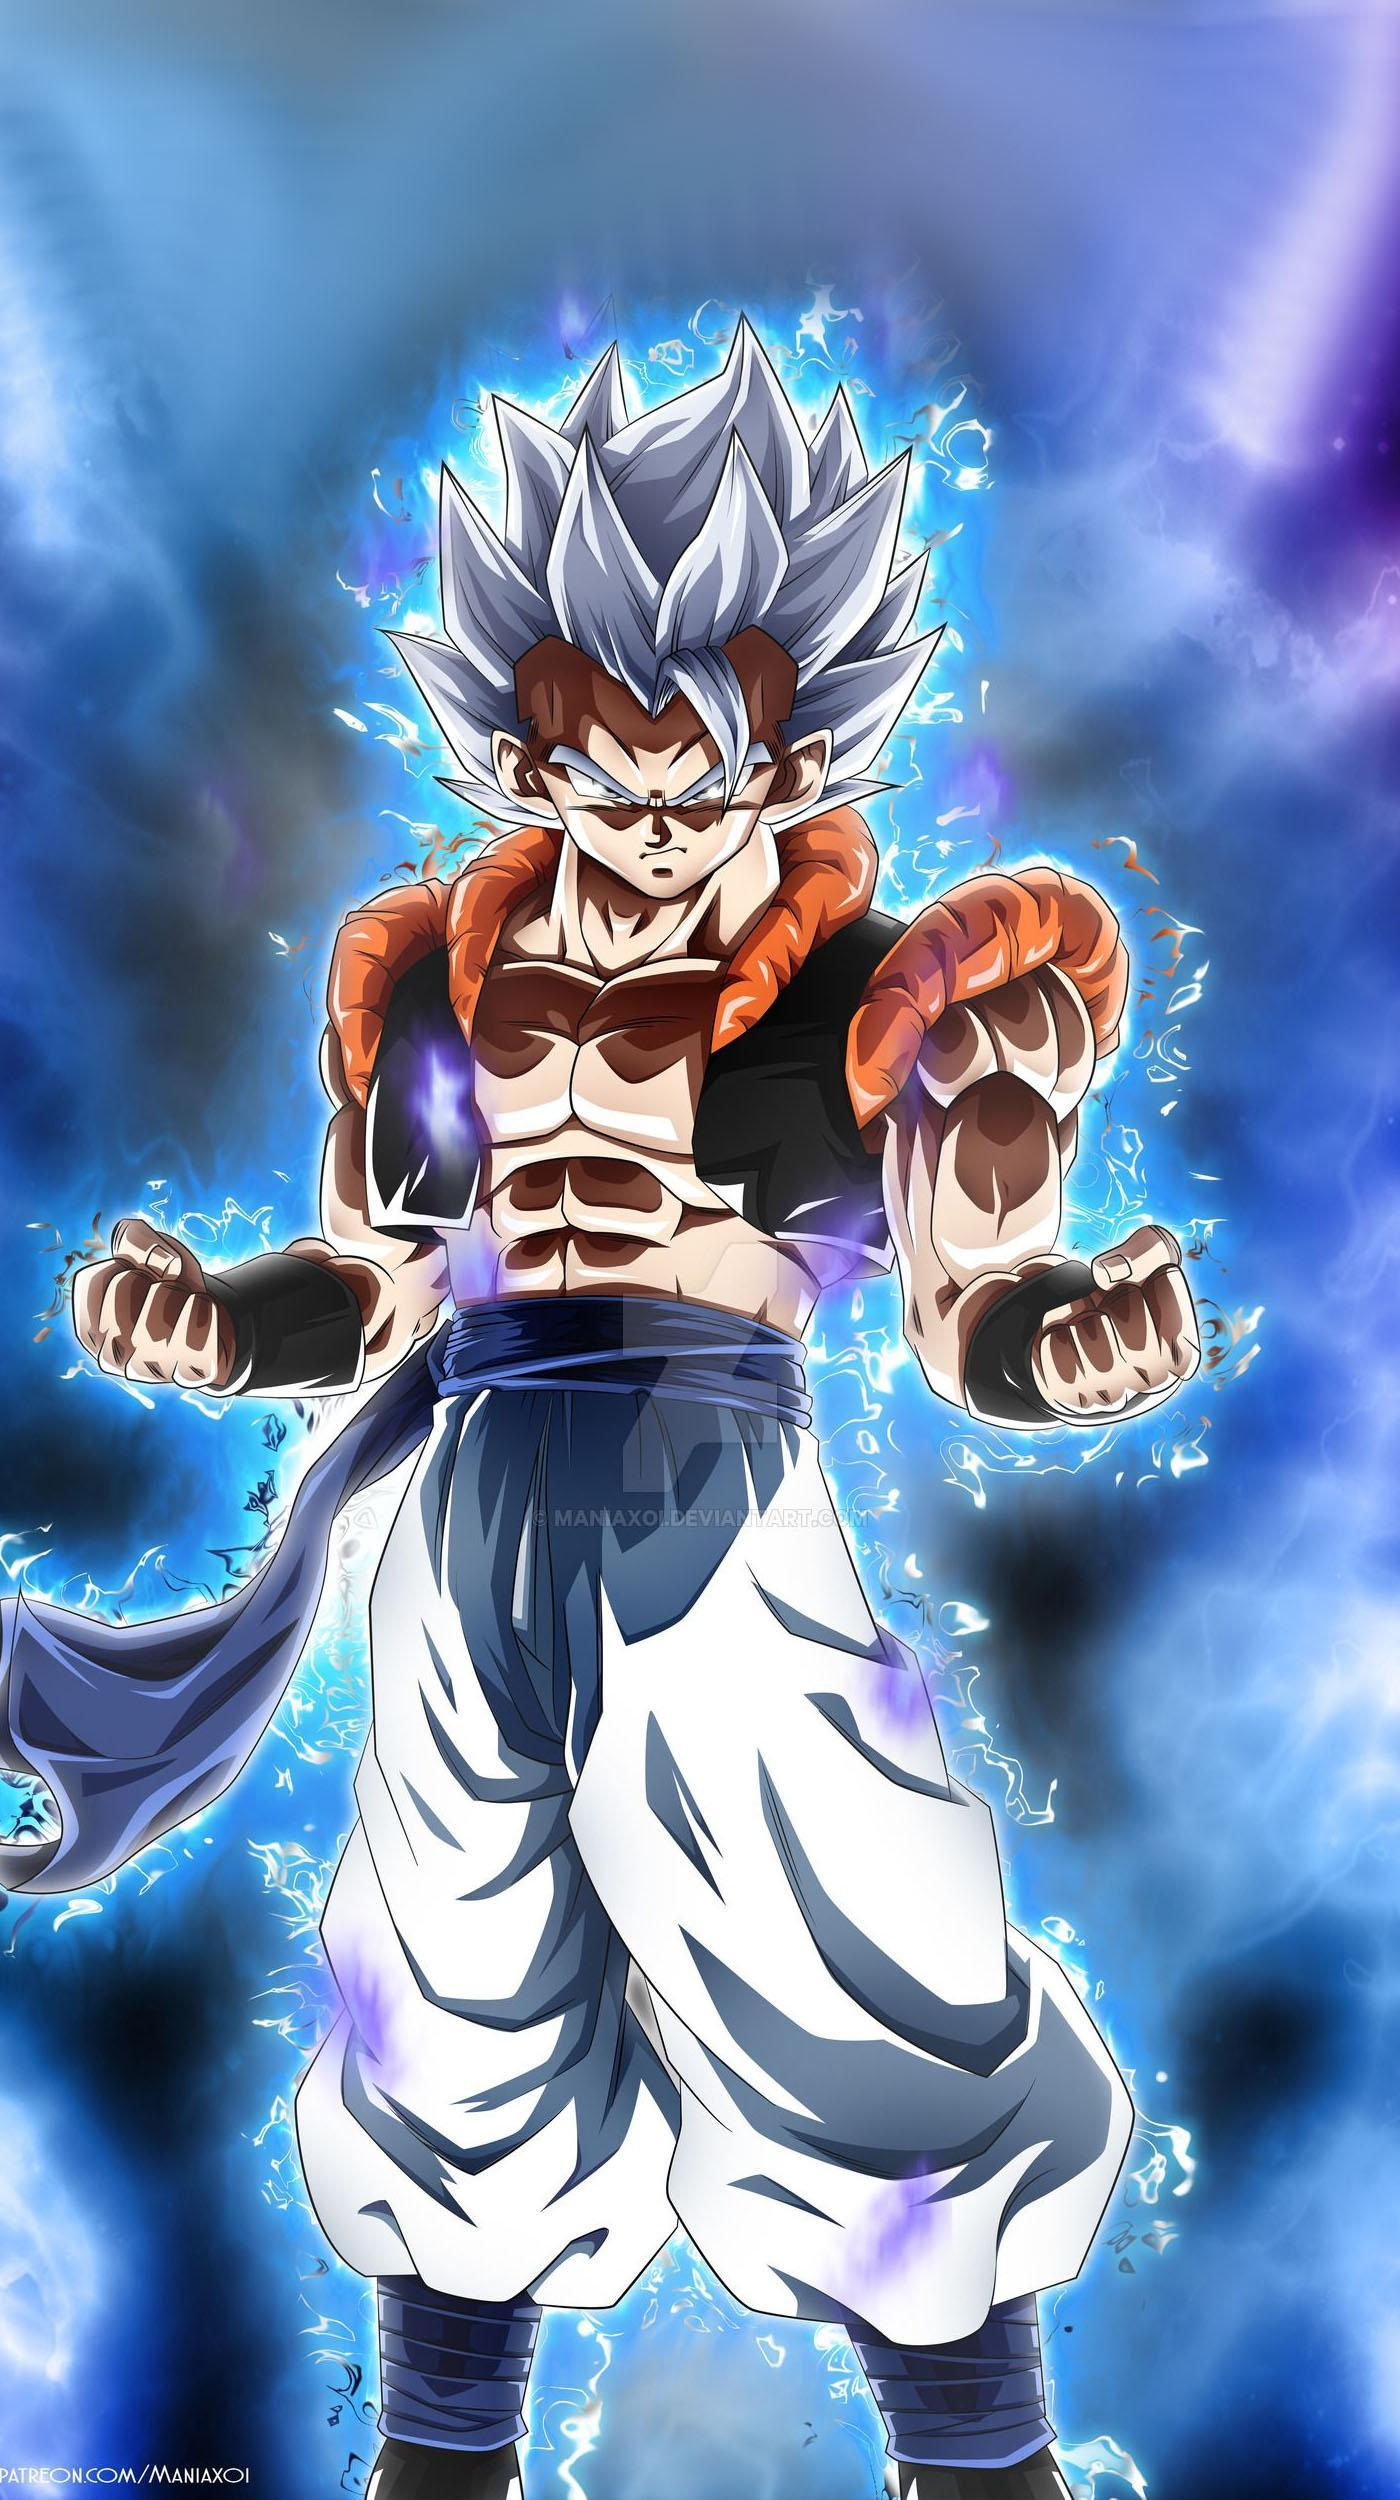 Dragon Ball Z Live Wallpapers For Android Posted By Sarah Sellers